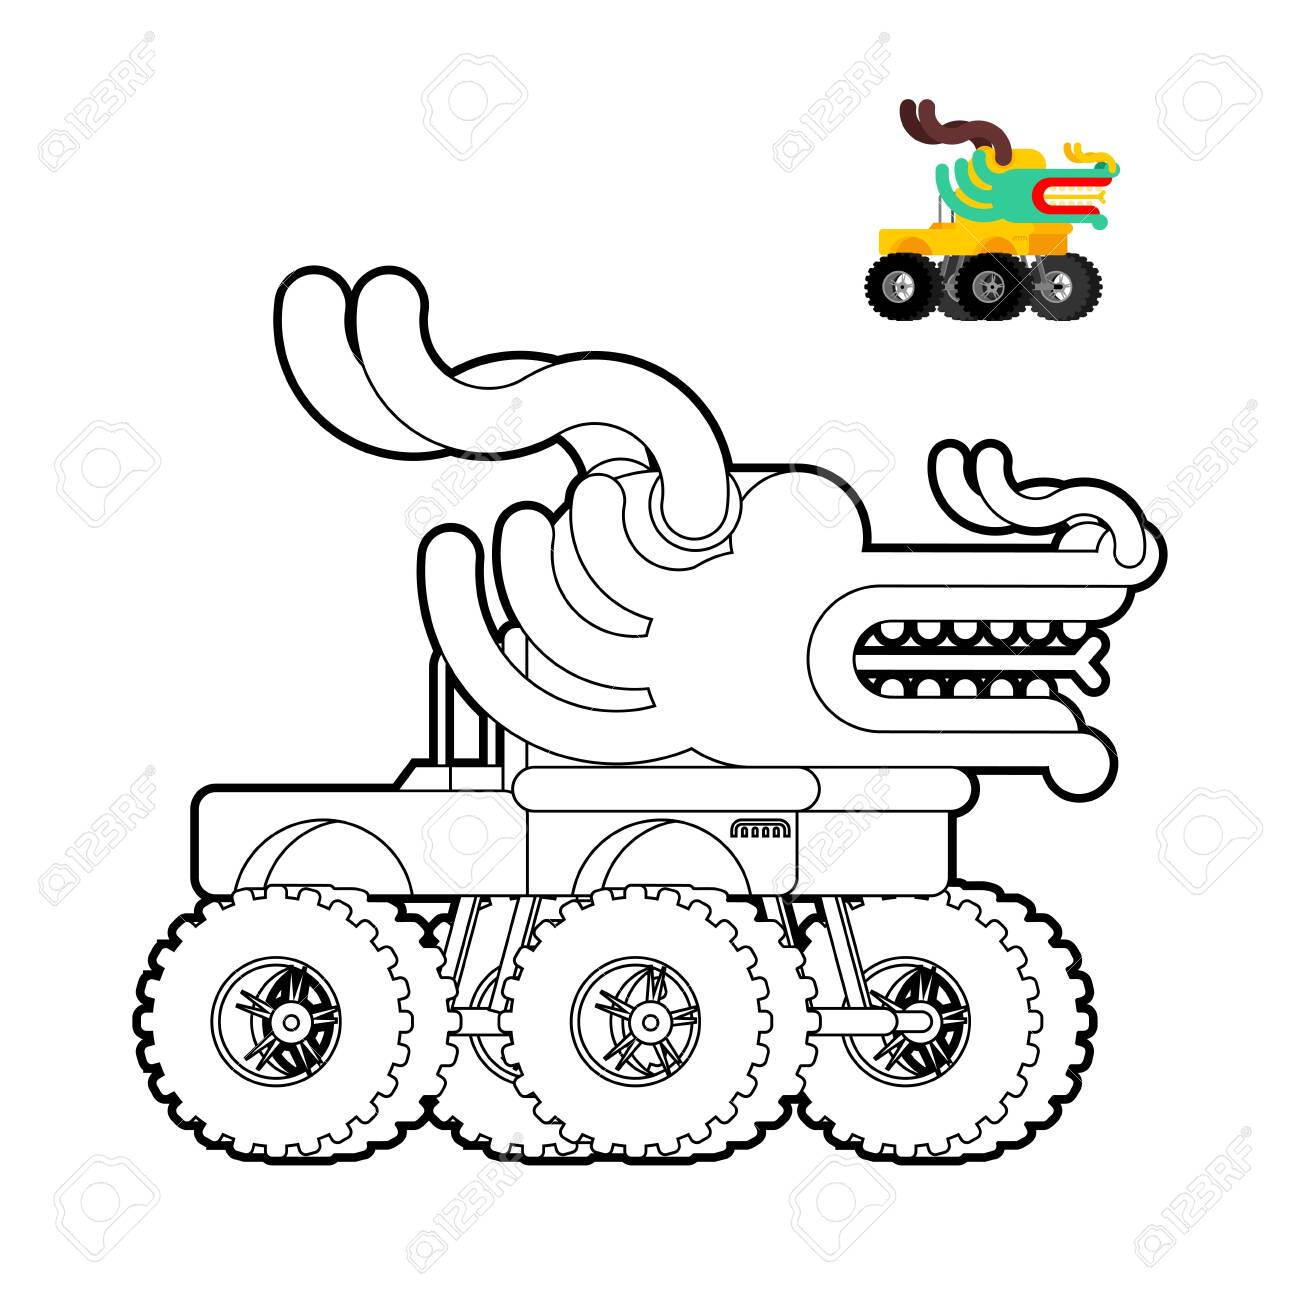 Monster Truck Dragon Coloring Book Animal Car On Big Wheels Royalty Free Cliparts Vectors And Stock Illustration Image 136754153